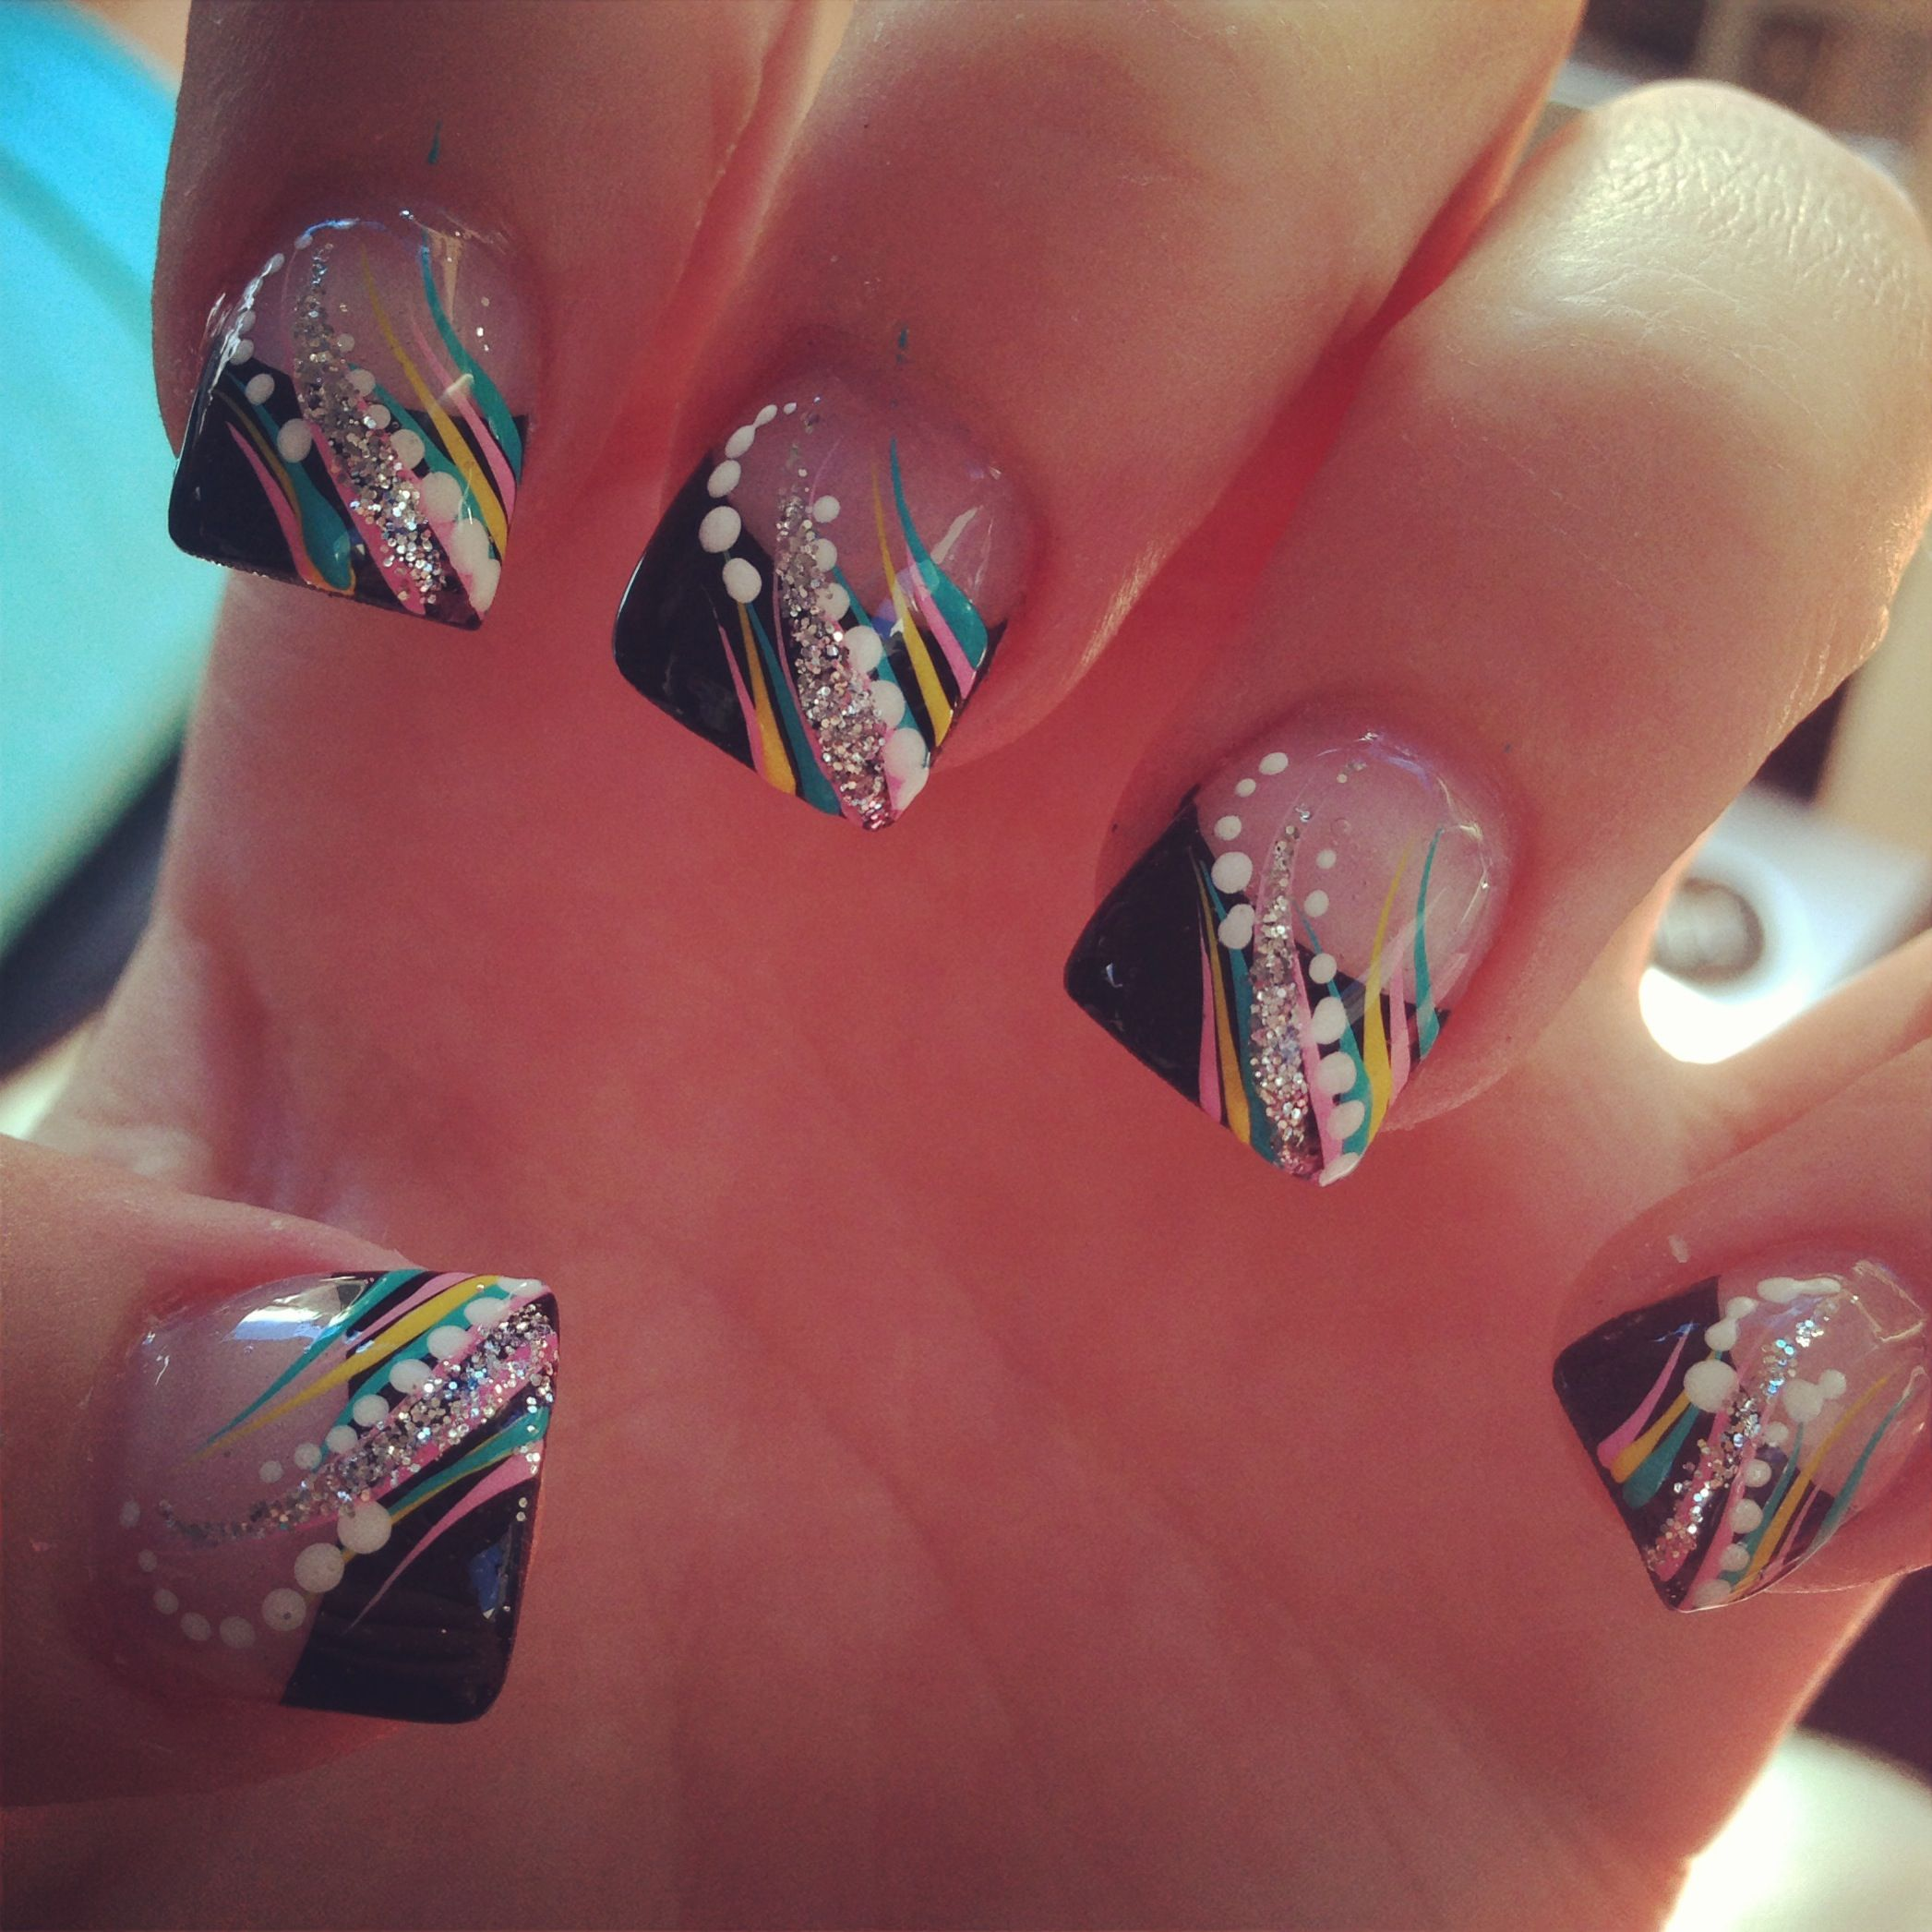 My new nails nails acrylic colorful black tip glitter love french tip nail art prinsesfo Gallery